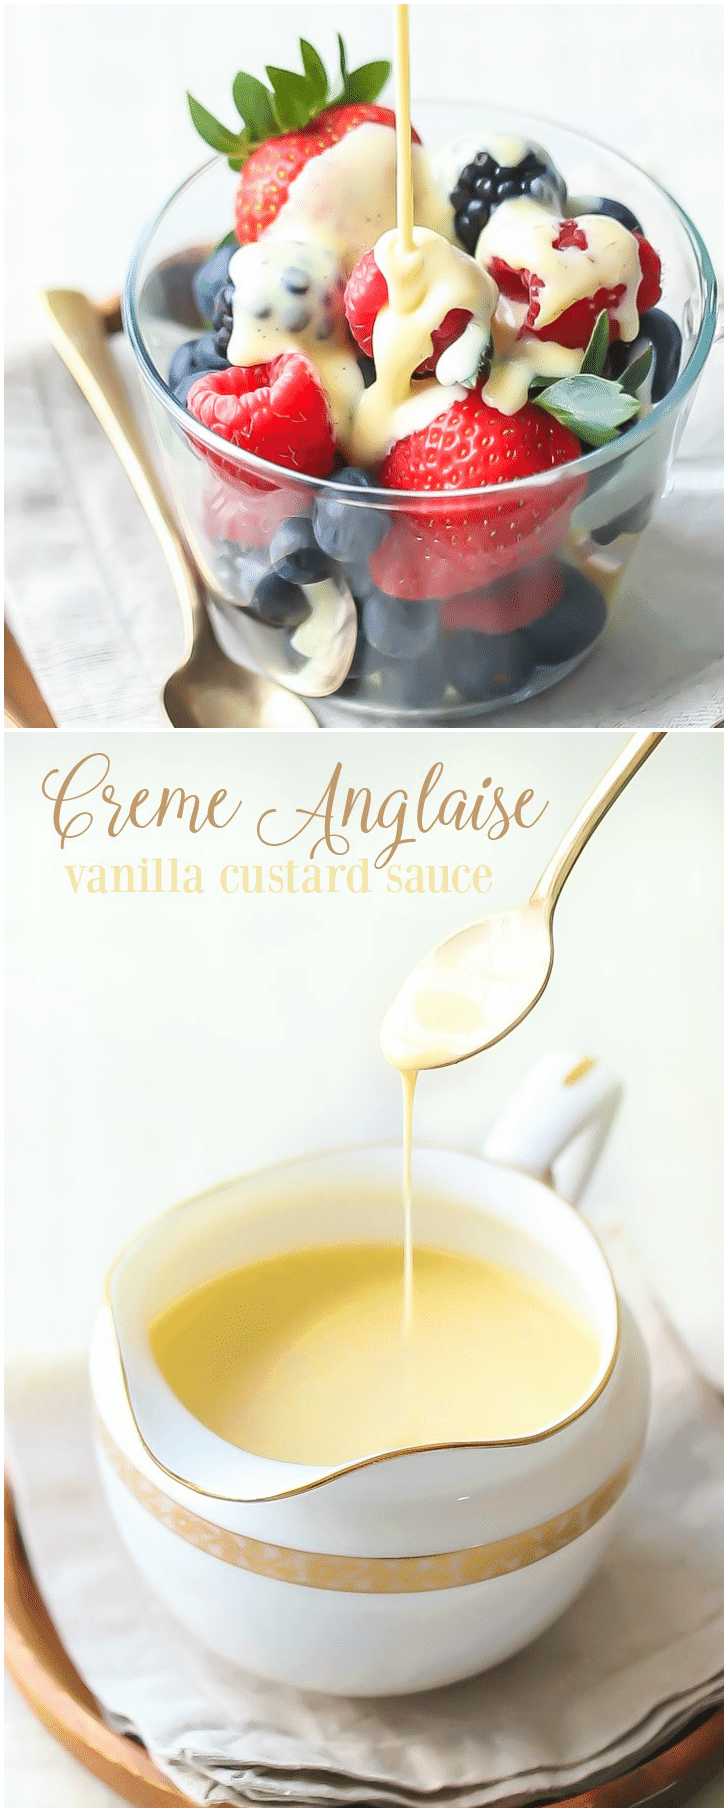 Creme Anglaise: this classic vanilla custard sauce will take any dessert to the next level!  It's like liquid creme brulee, so rich and creamy, and it's made from just 5 simple ingredients!  #cremeanglaise #desserts #sauce #vanilla #custard #recipes